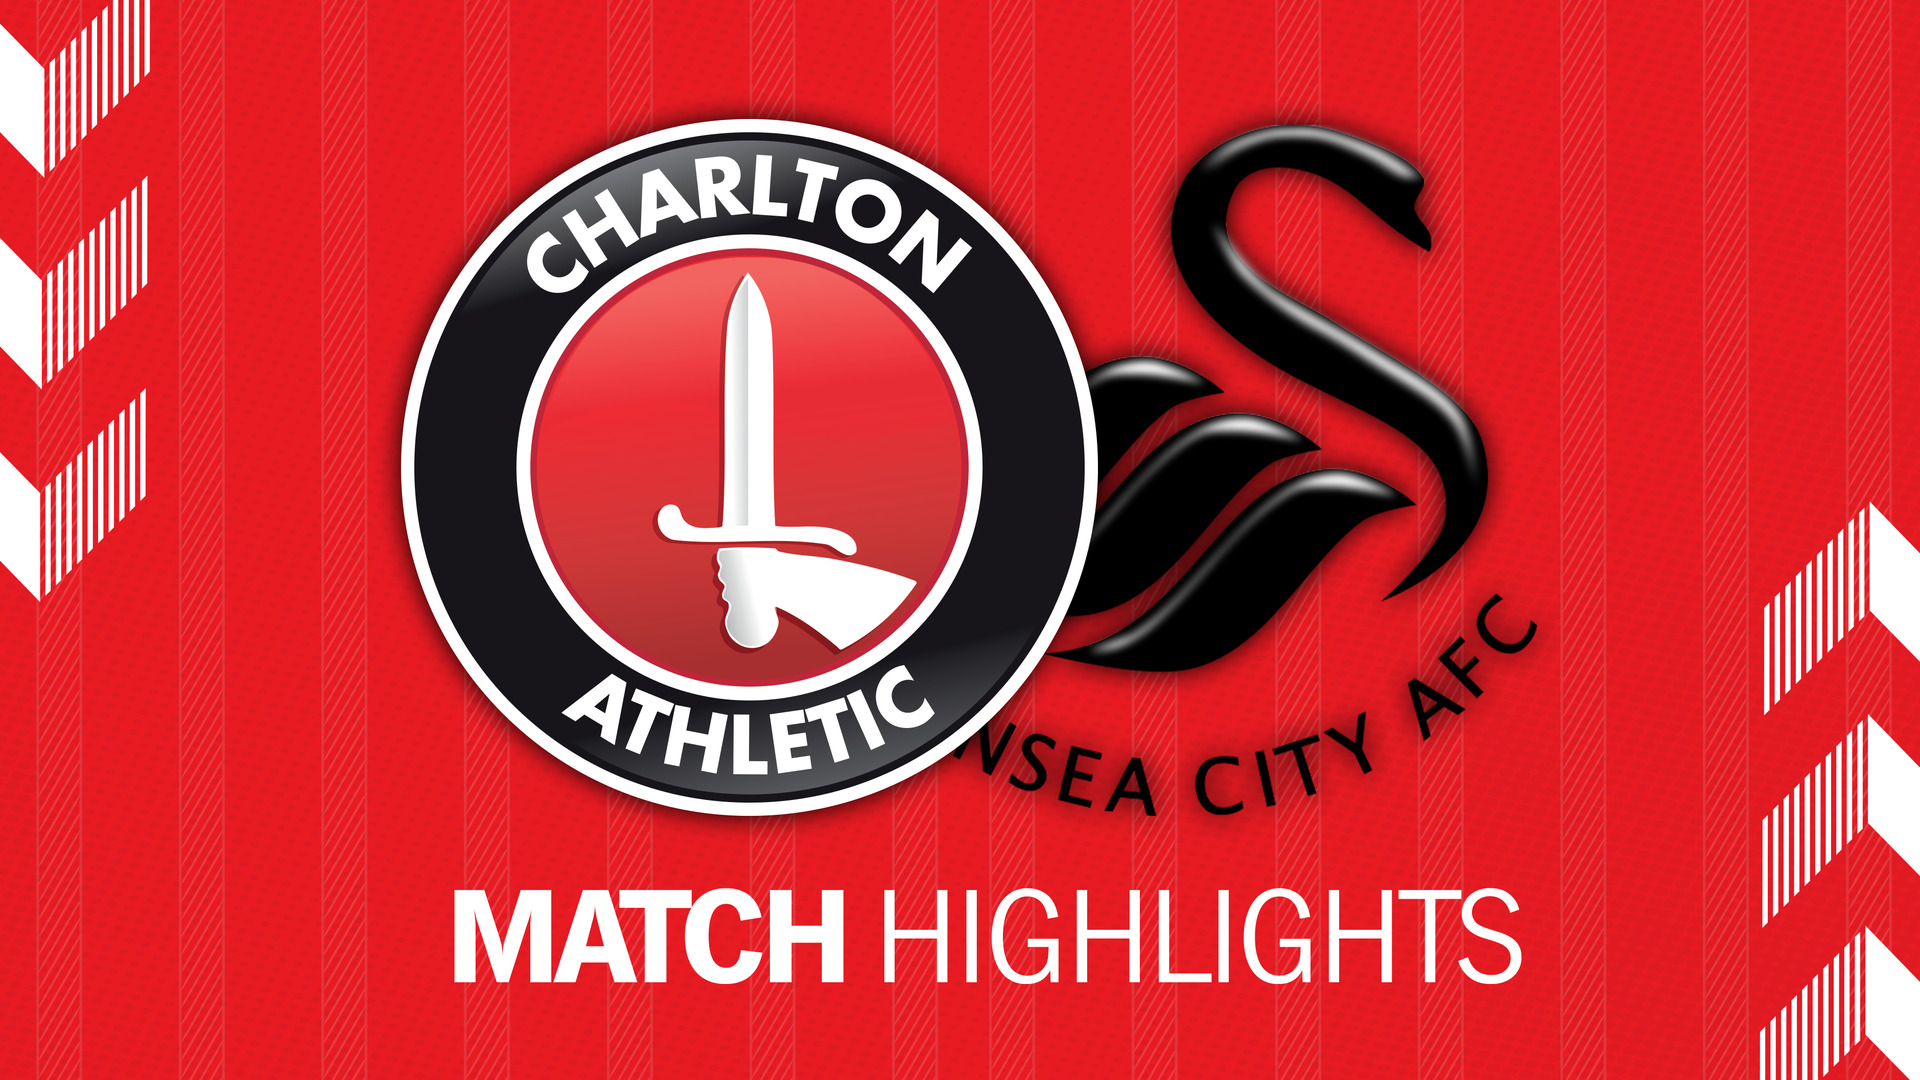 11 HIGHLIGHTS | Charlton 1 Swansea City 2 (October 2019)